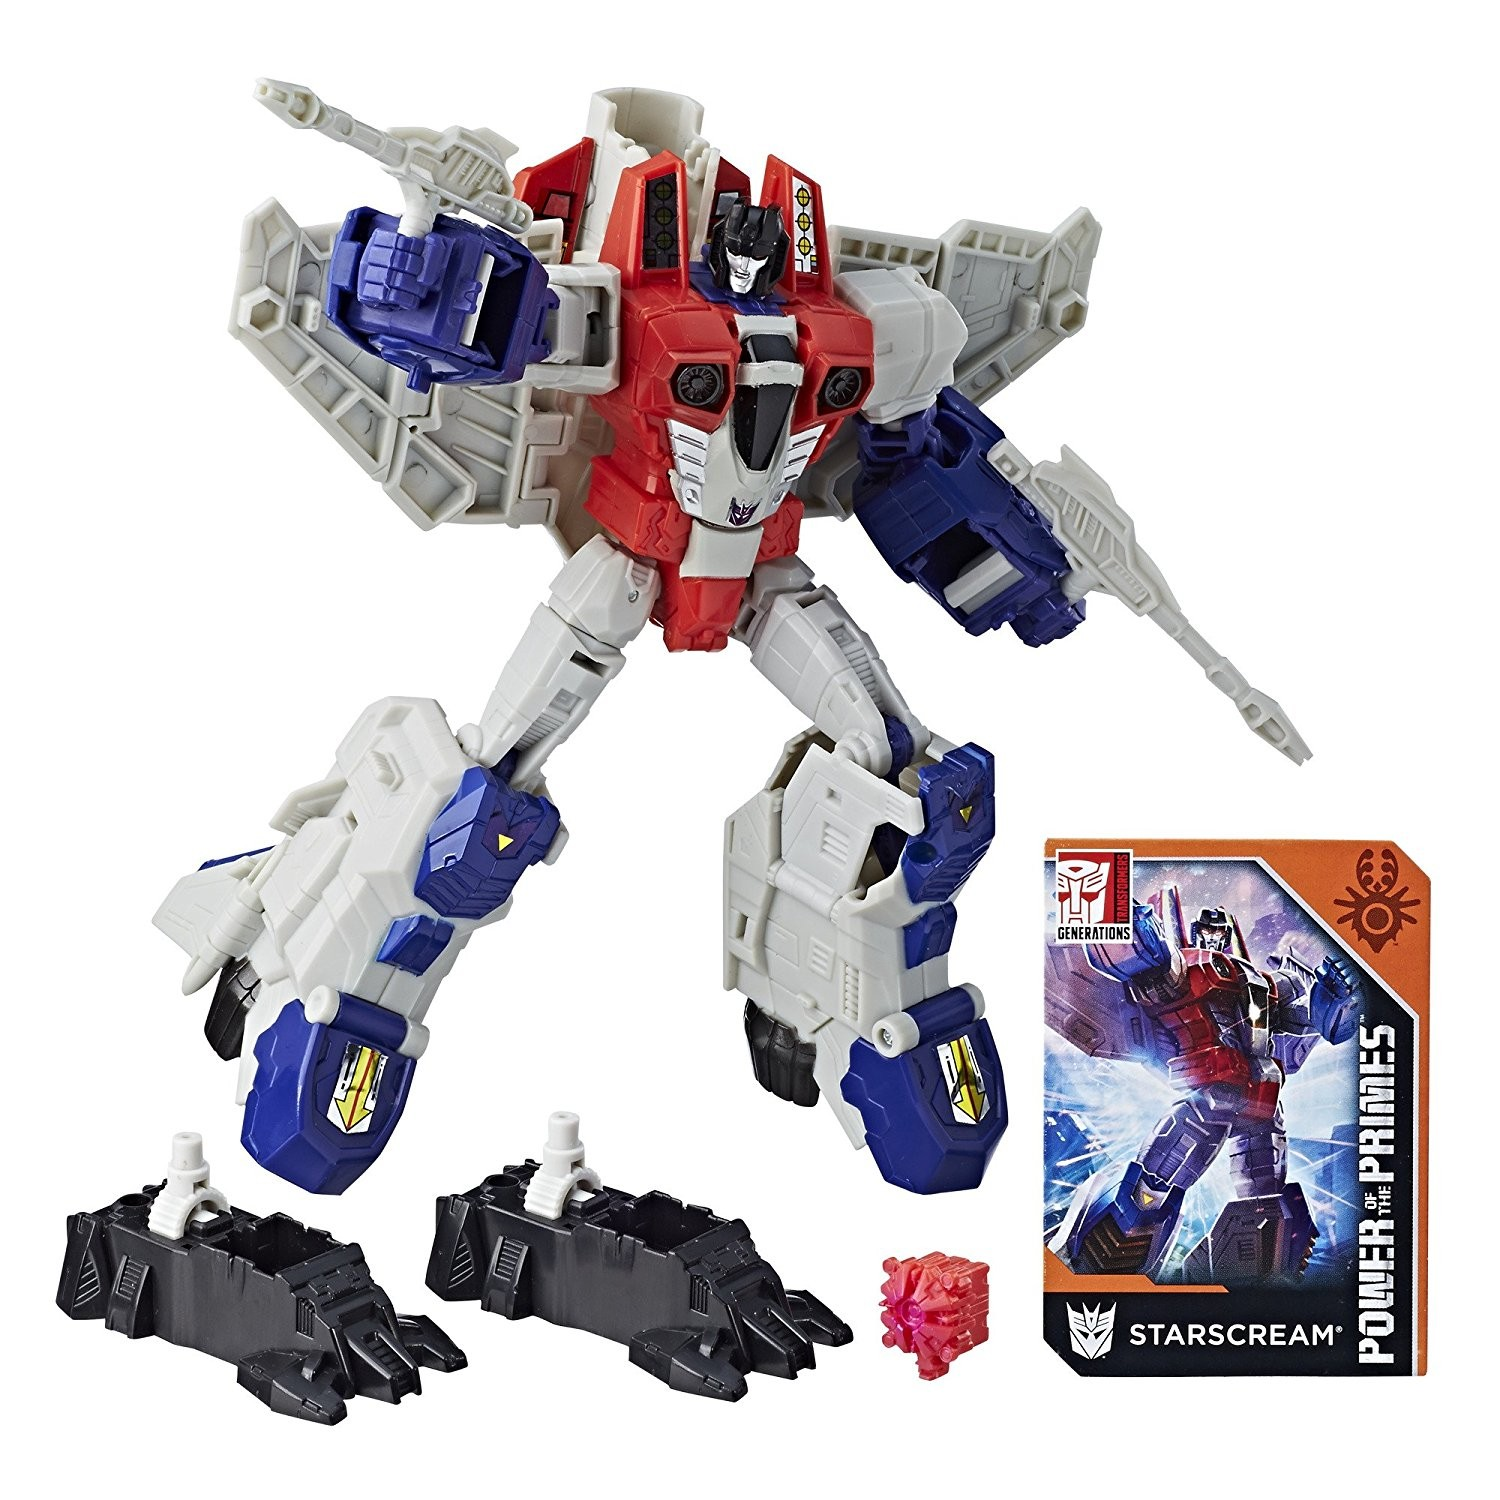 Transformers News: Transformers Power of the Primes Wave 1 figures Available for Pre-order on Amazon